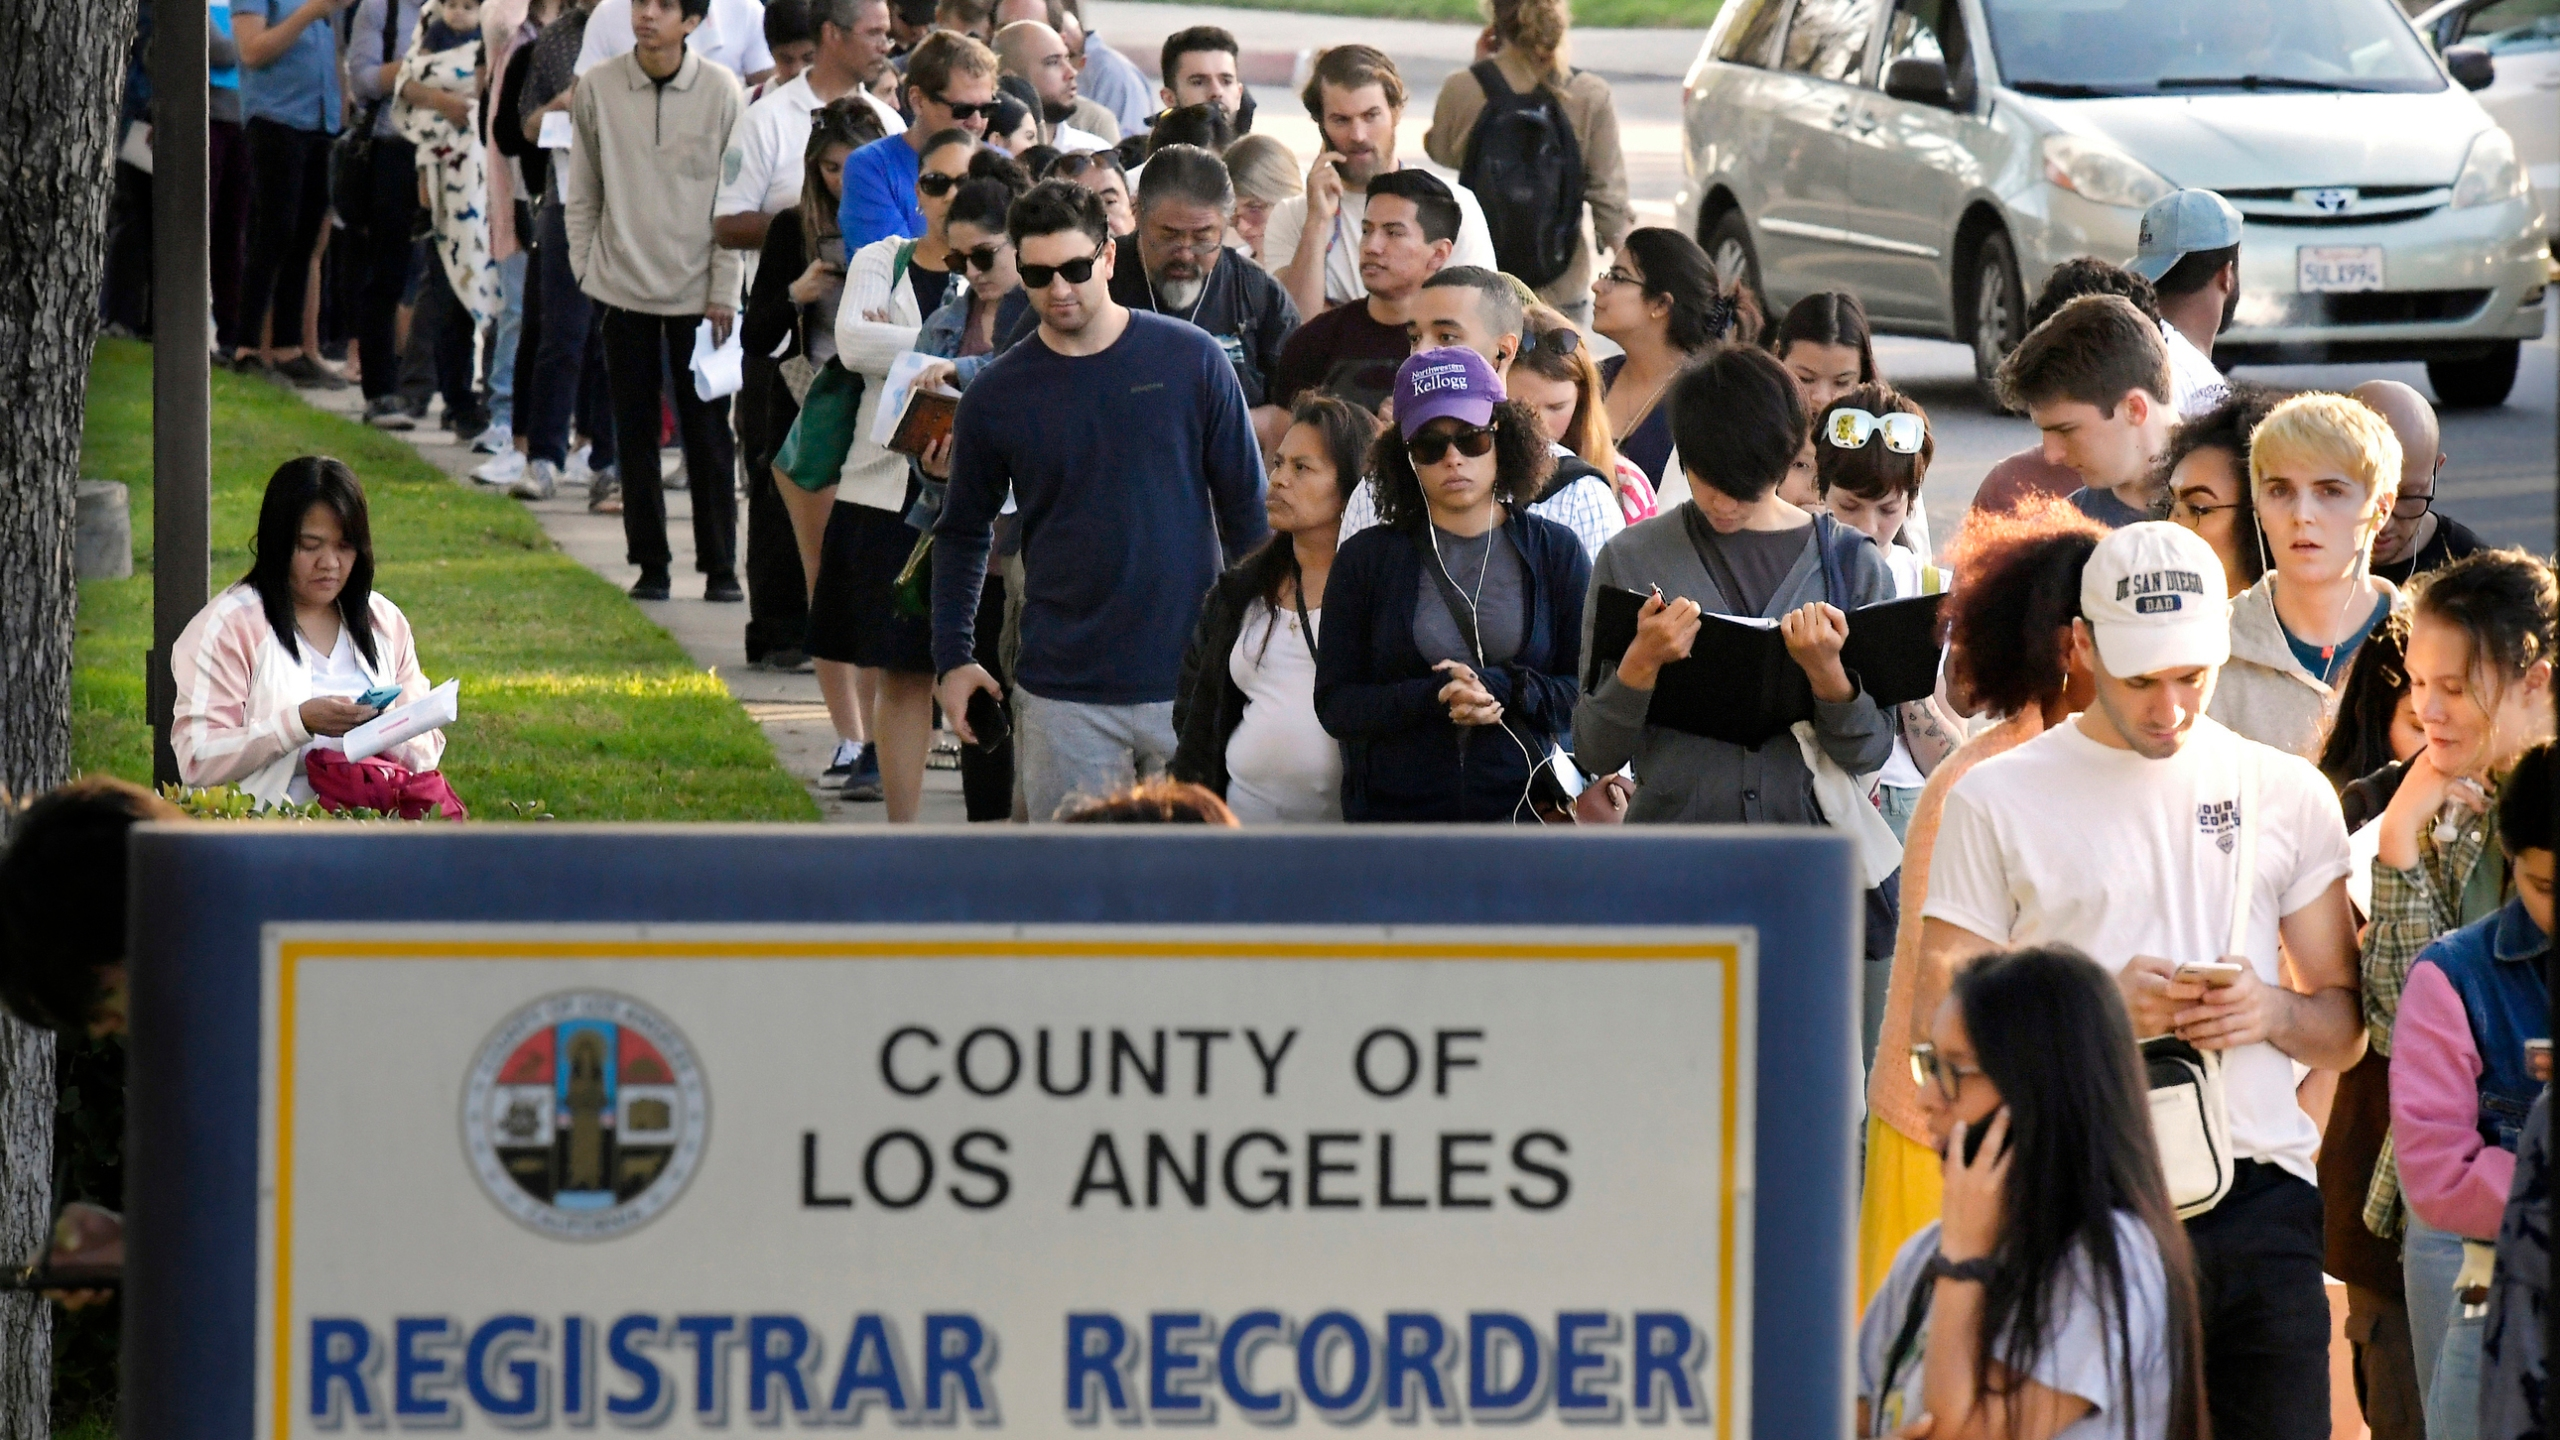 In this Nov. 6, 2018, file photo, potential voters wait in long lines to register and vote at the Los Angeles County Registrar's office in Norwalk. (Mark J. Terrill / Associated Press)